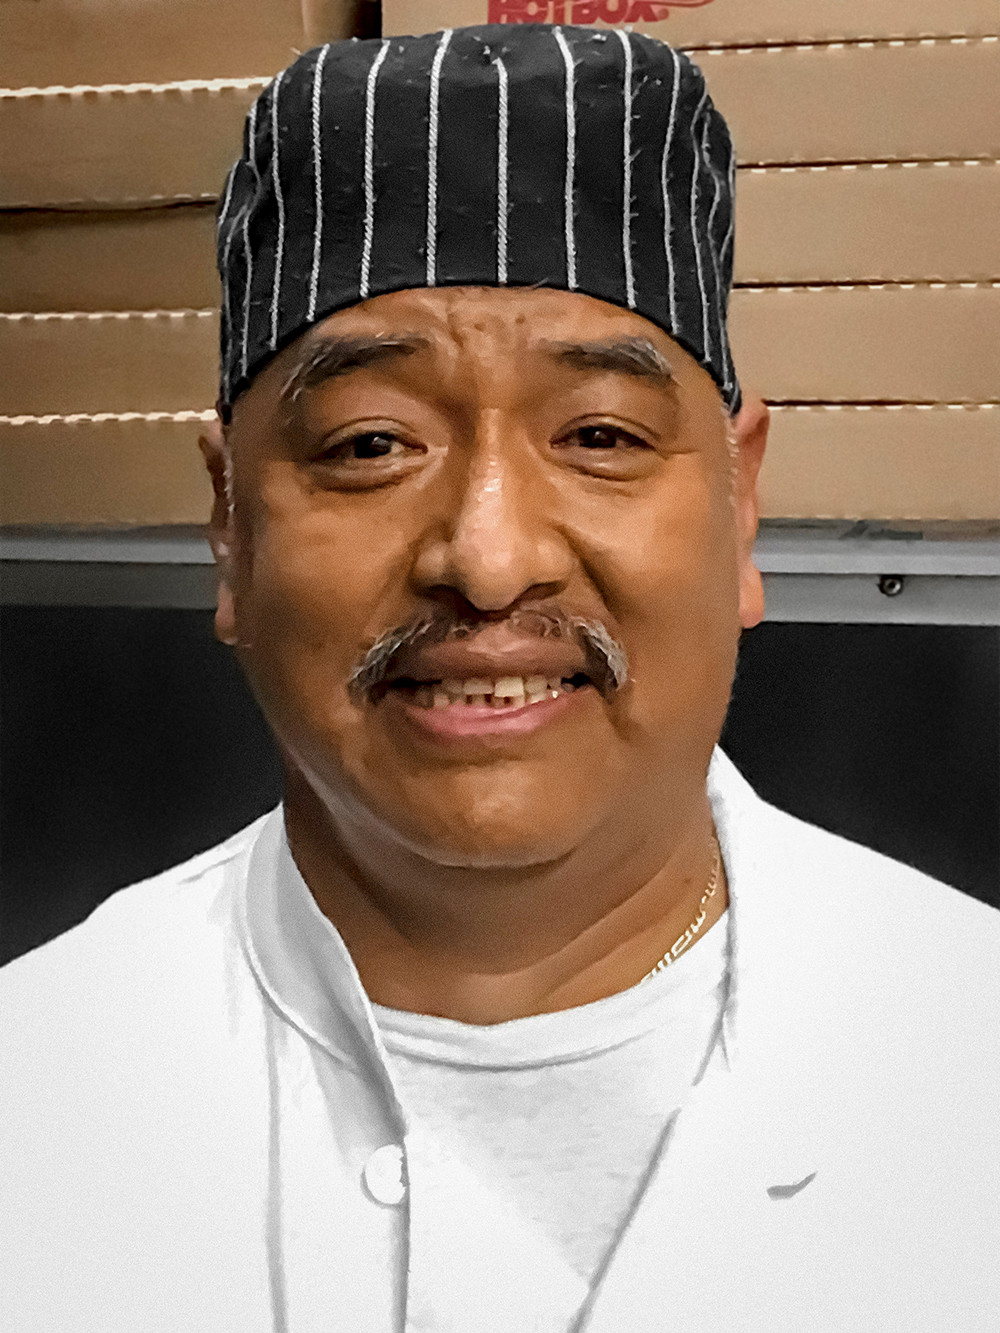 Chef Frank Urbina: In the Kitchen at Spaghetti Eddie's for 29 Years